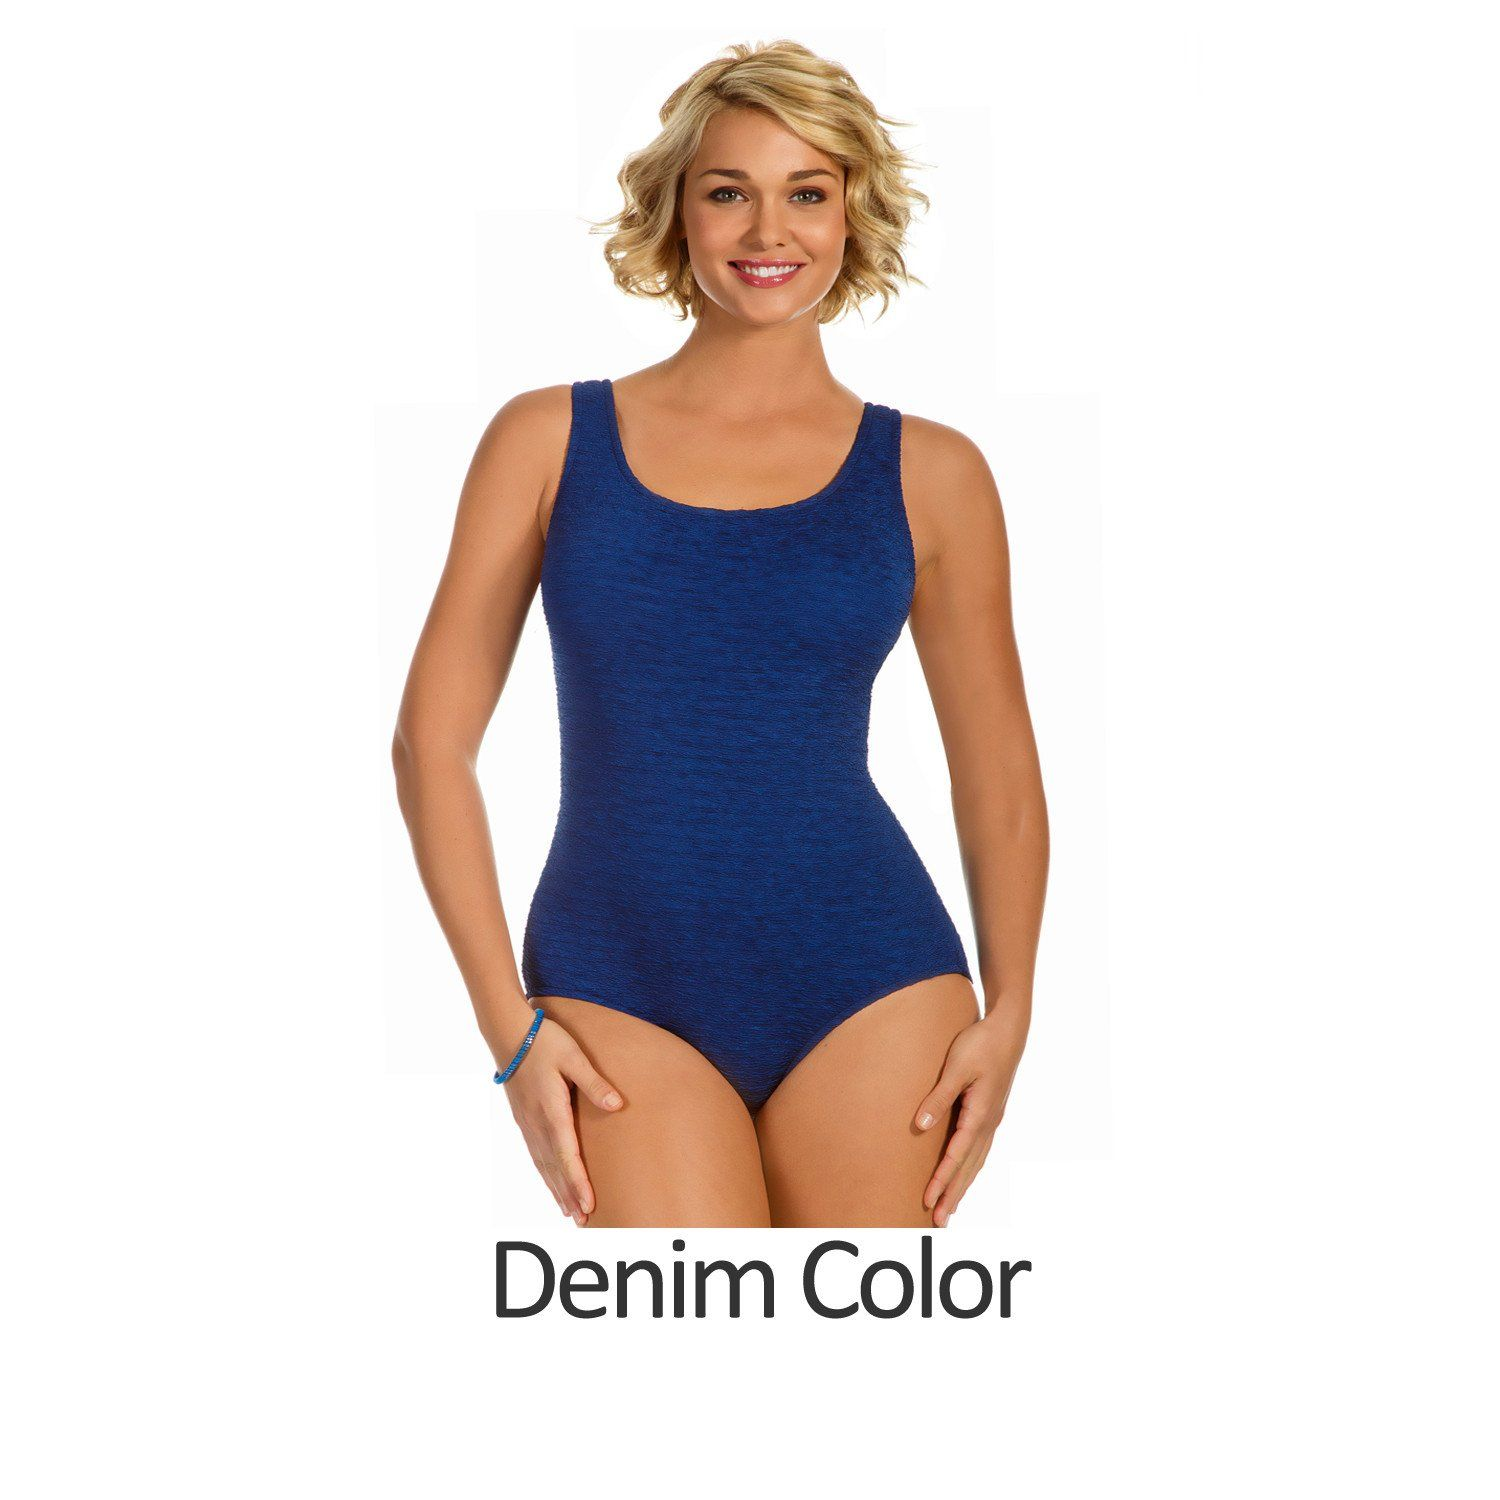 Krinkle Chlorine Resistant Swimwear Polyester Plus Size Swimsuit Available In 3 Colors Plus Size Swimsuits Chlorine Resistant Swimwear Plus Size Swimwear